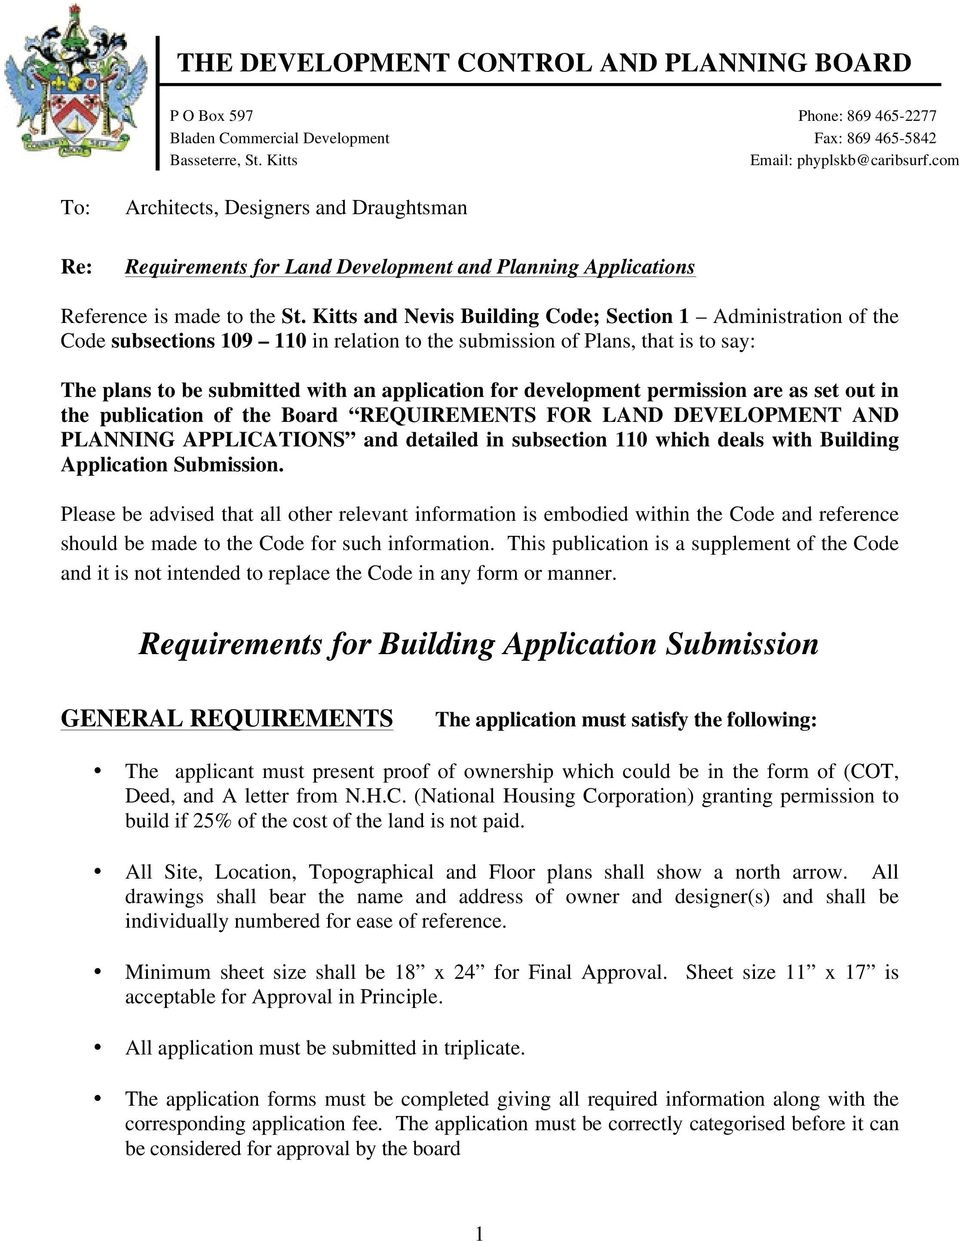 Kitts and Nevis Building Code; Section 1 Administration of the Code subsections 109 110 in relation to the submission of Plans, that is to say: The plans to be submitted with an application for